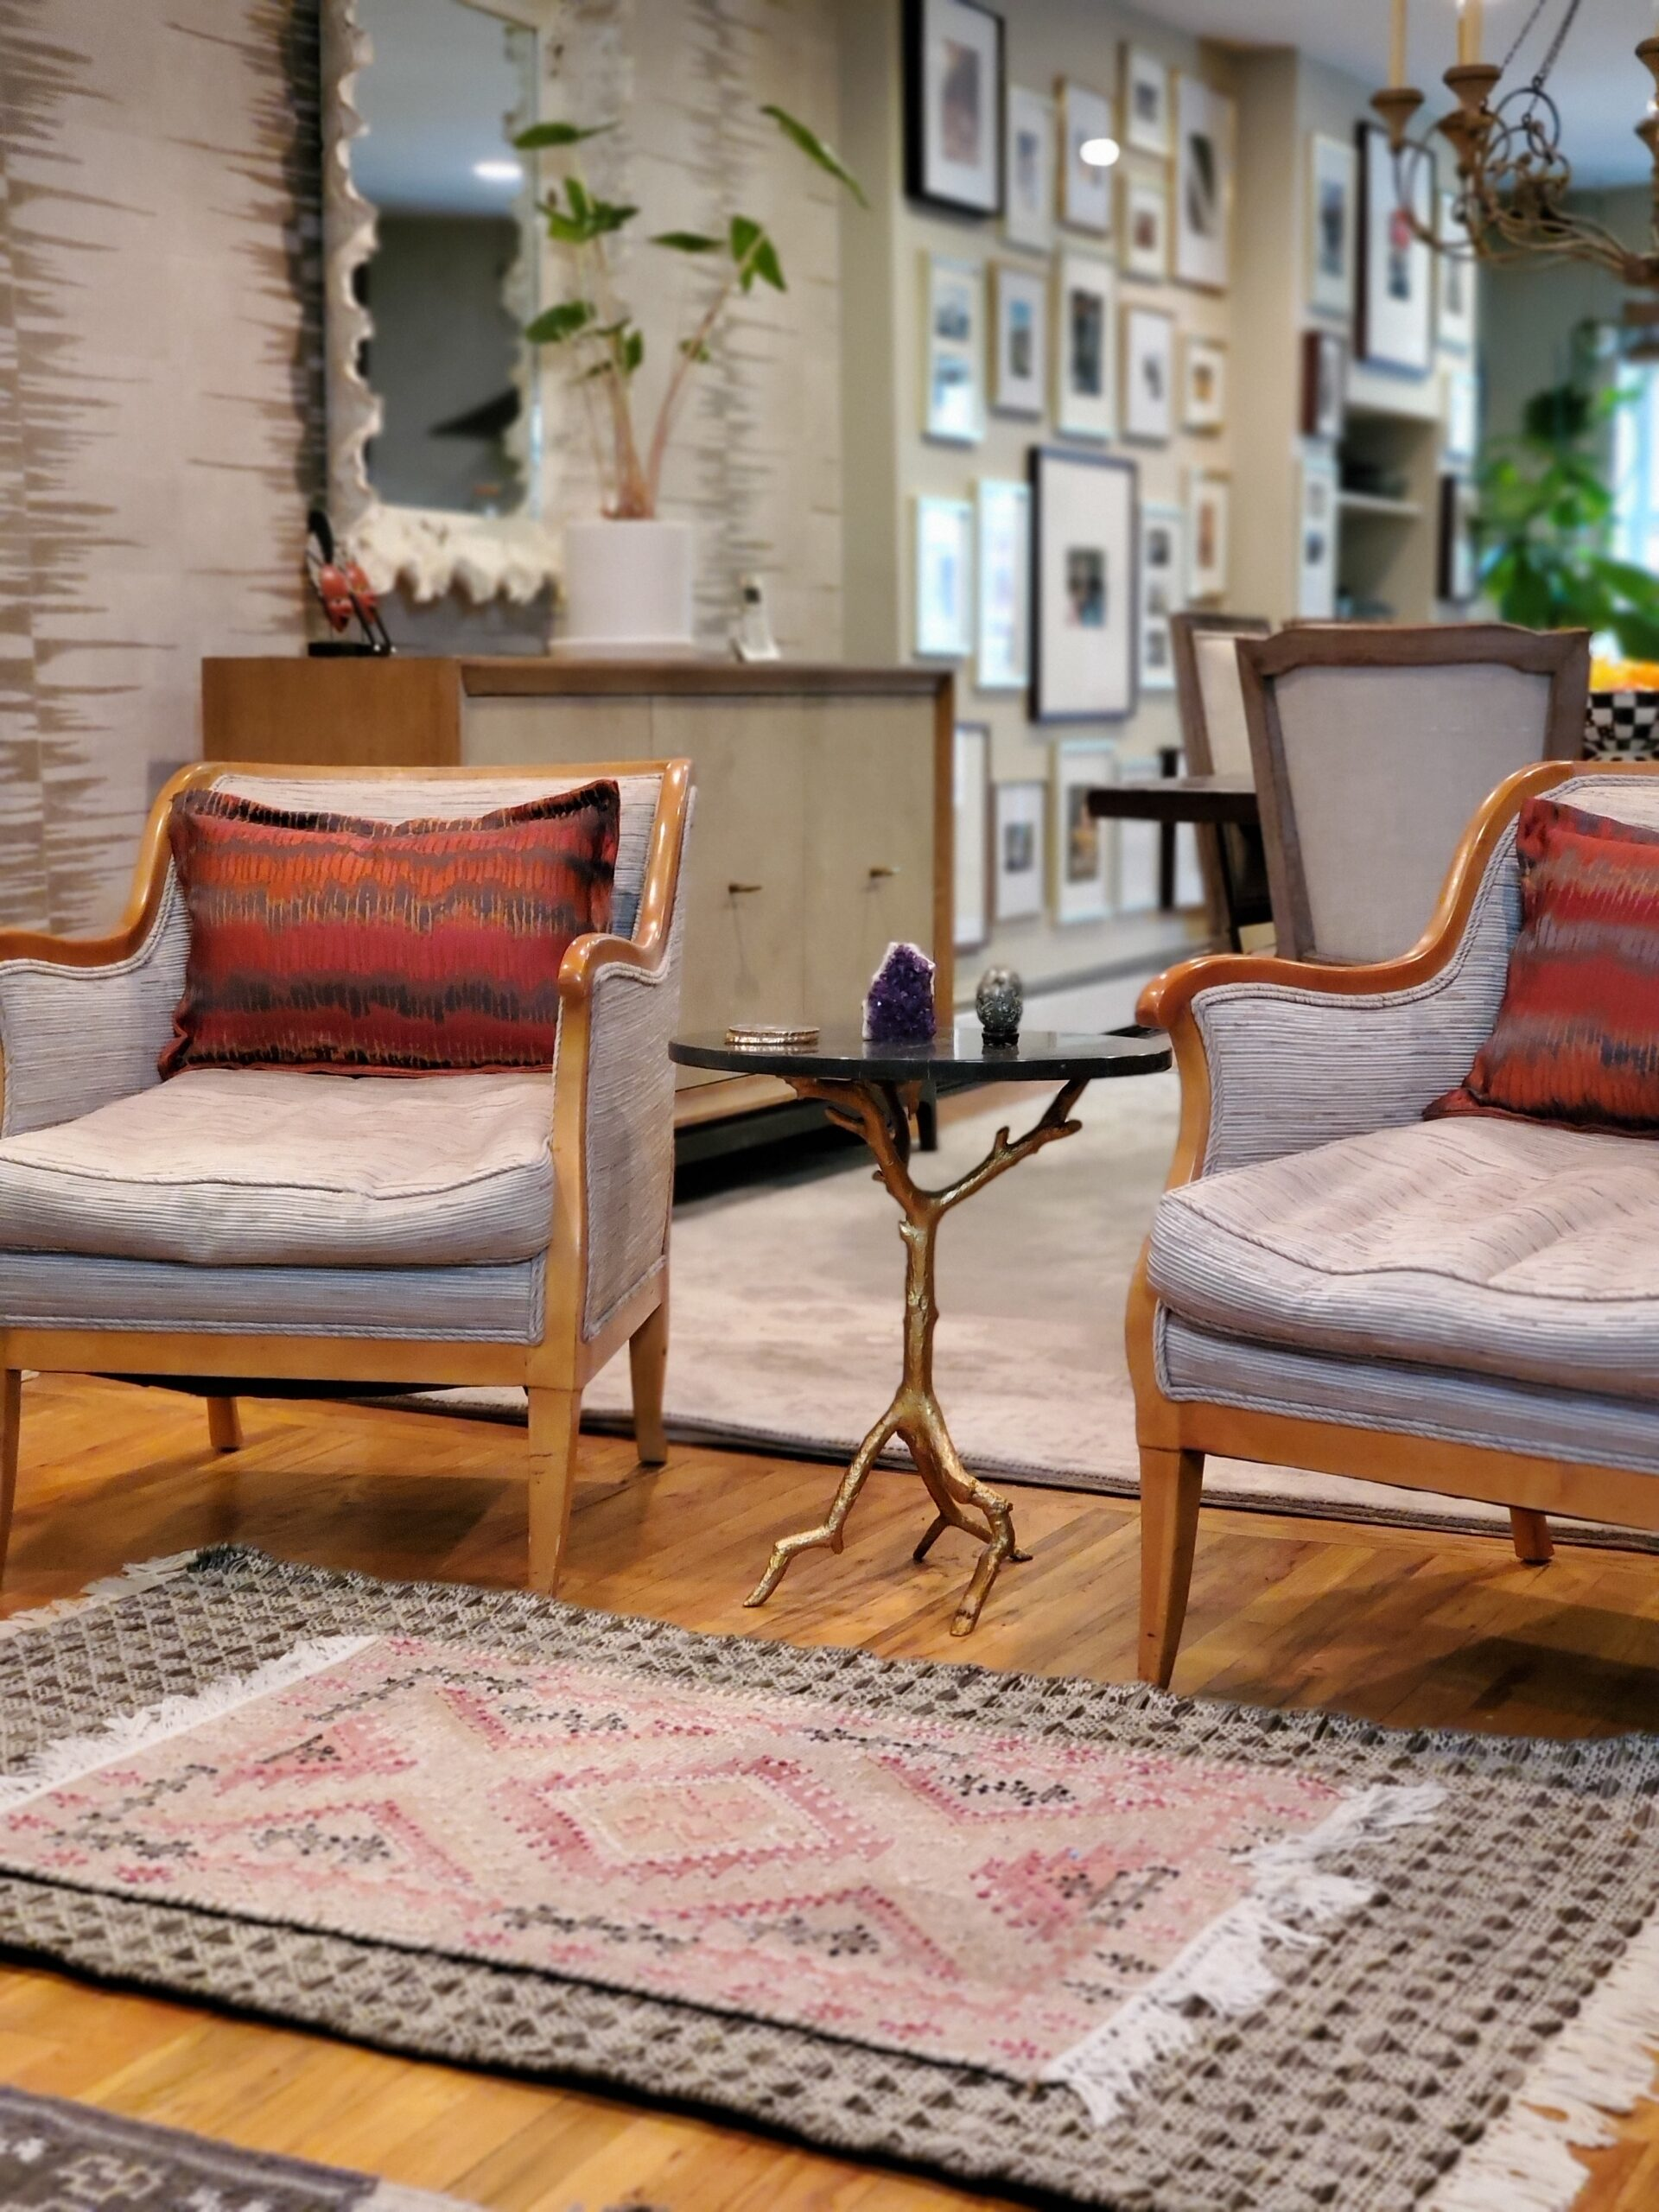 Re-inspire Your Living Space